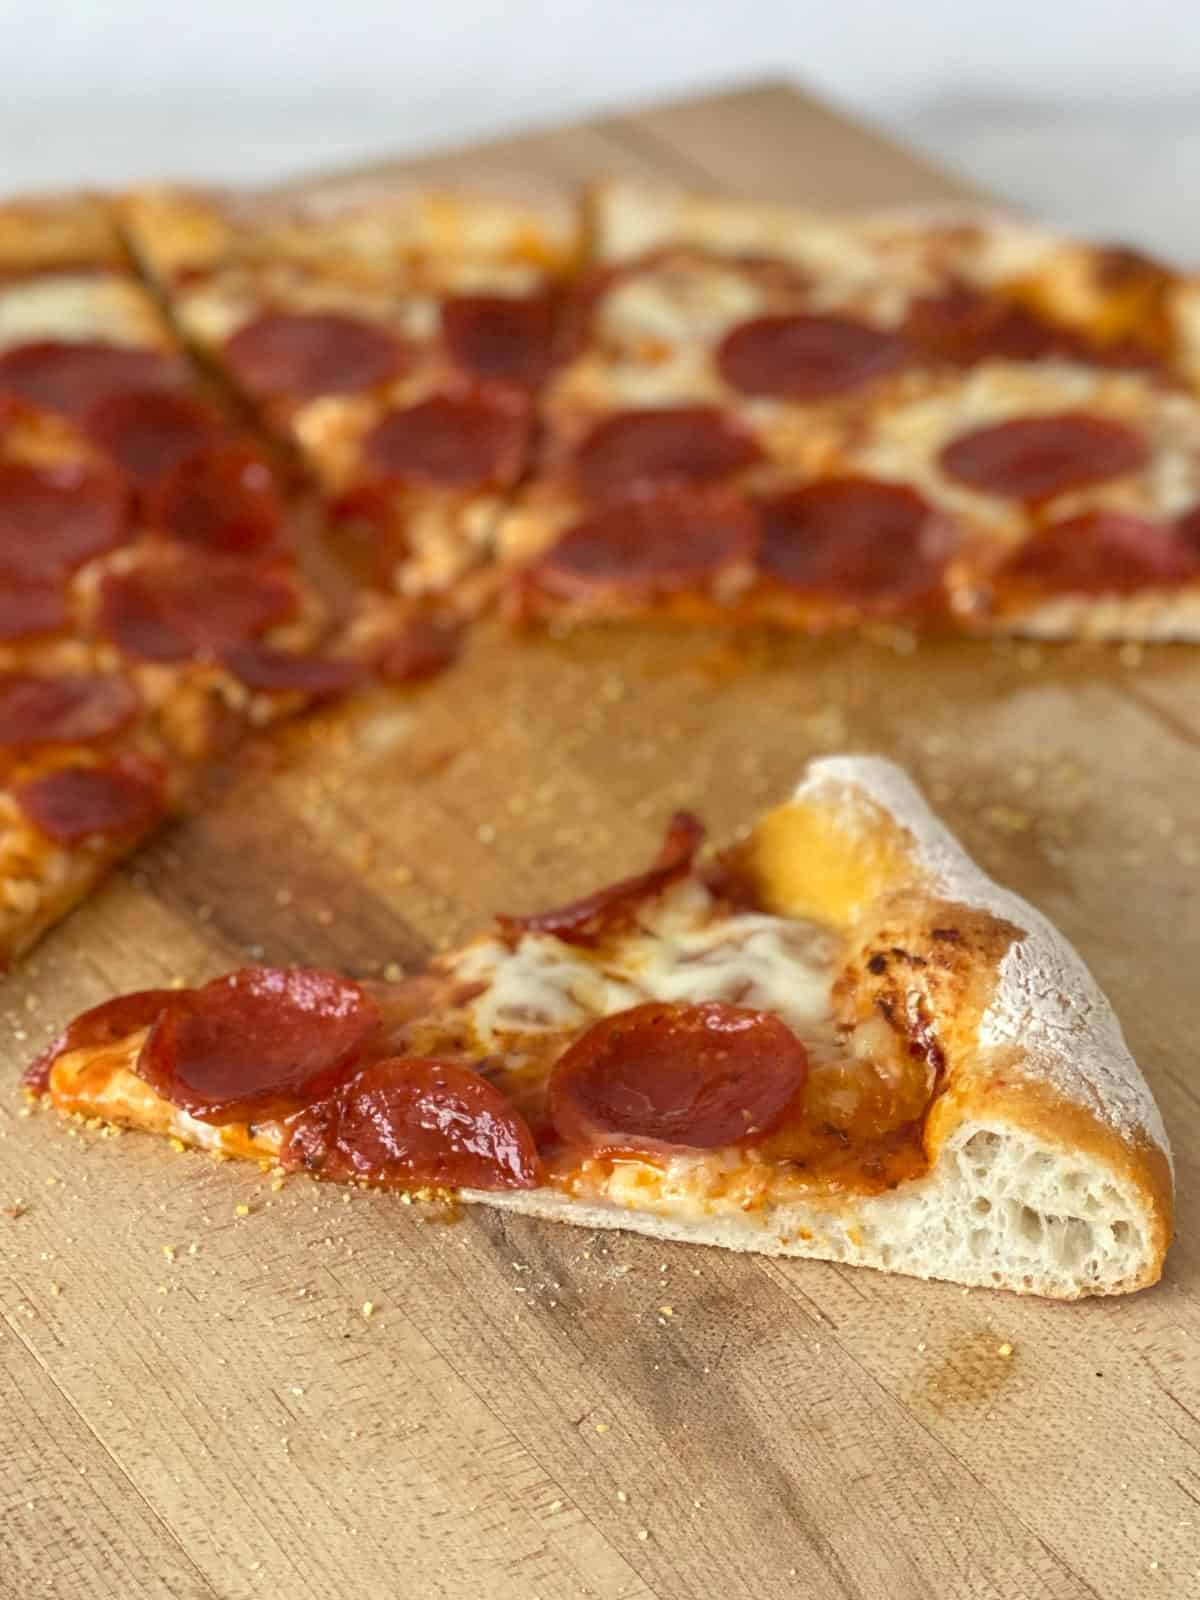 slice of homemade pizza crust topped with cheese and pepperoni